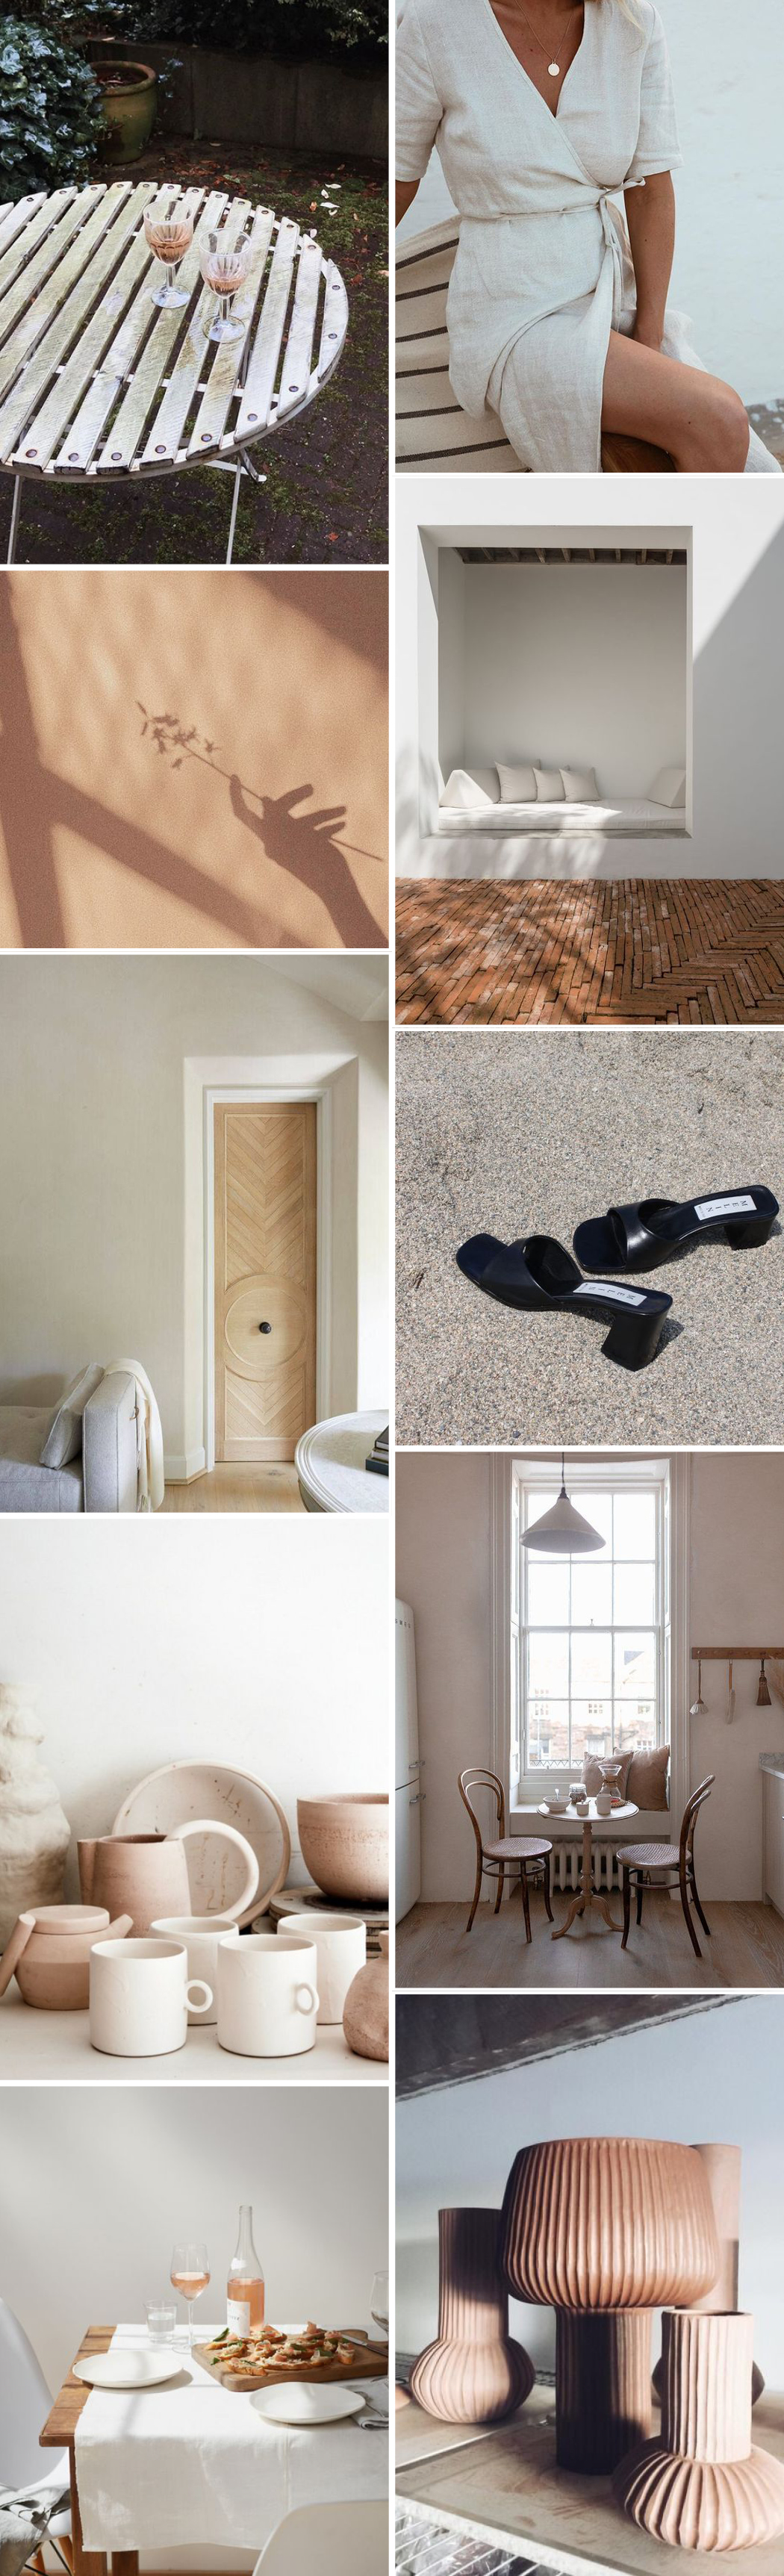 Beige and Terracotta Mood Board - Spring Inspiration from Pinterest / RG Daily Blog